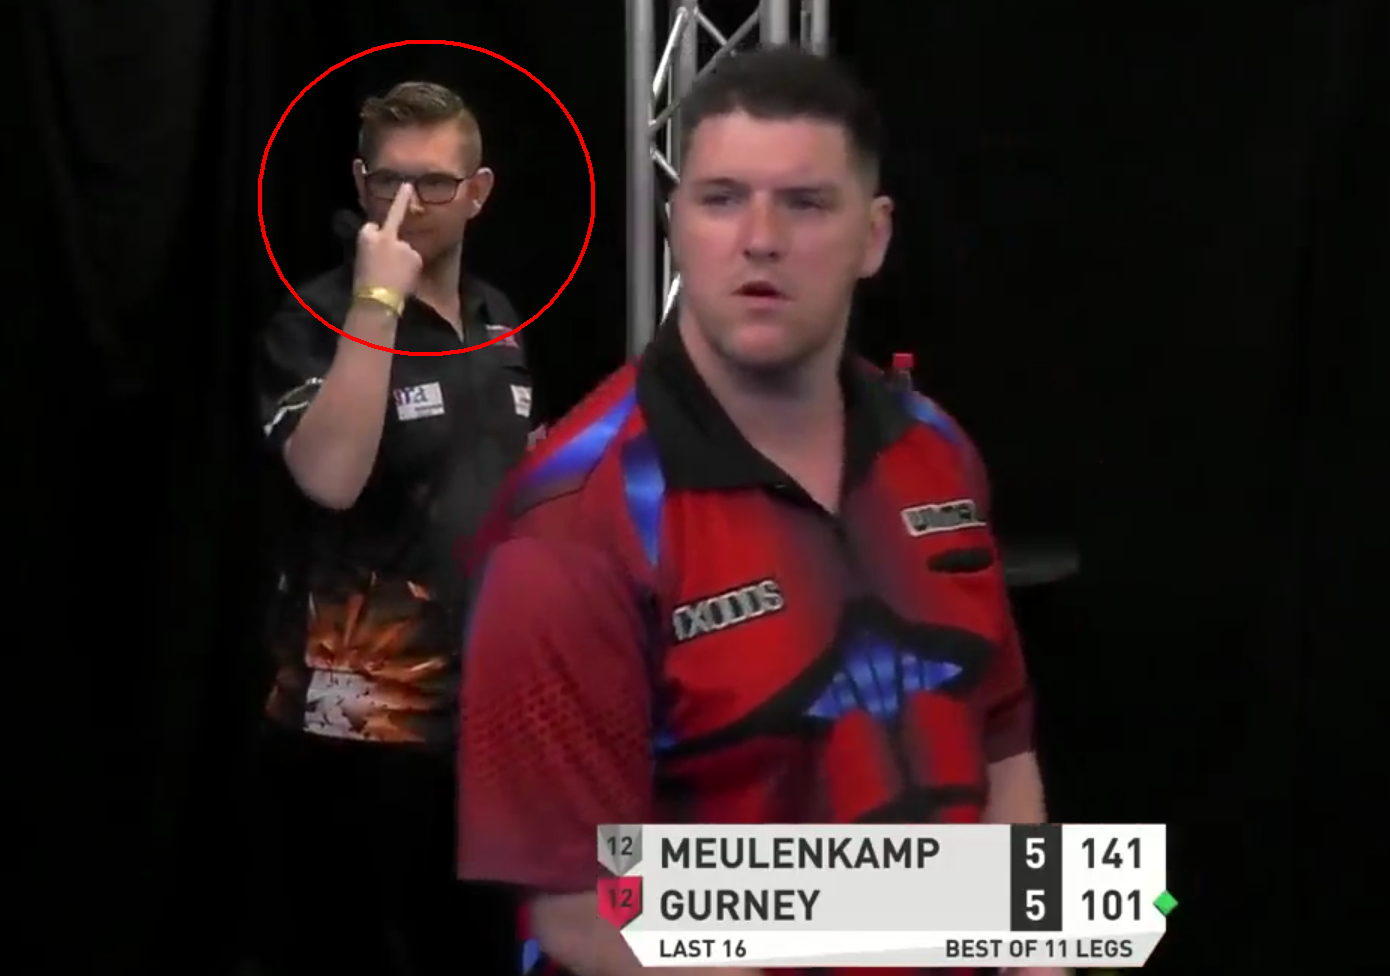 VIDEO: Ron Meulenkamp's Special Message For Daryl Gurney?